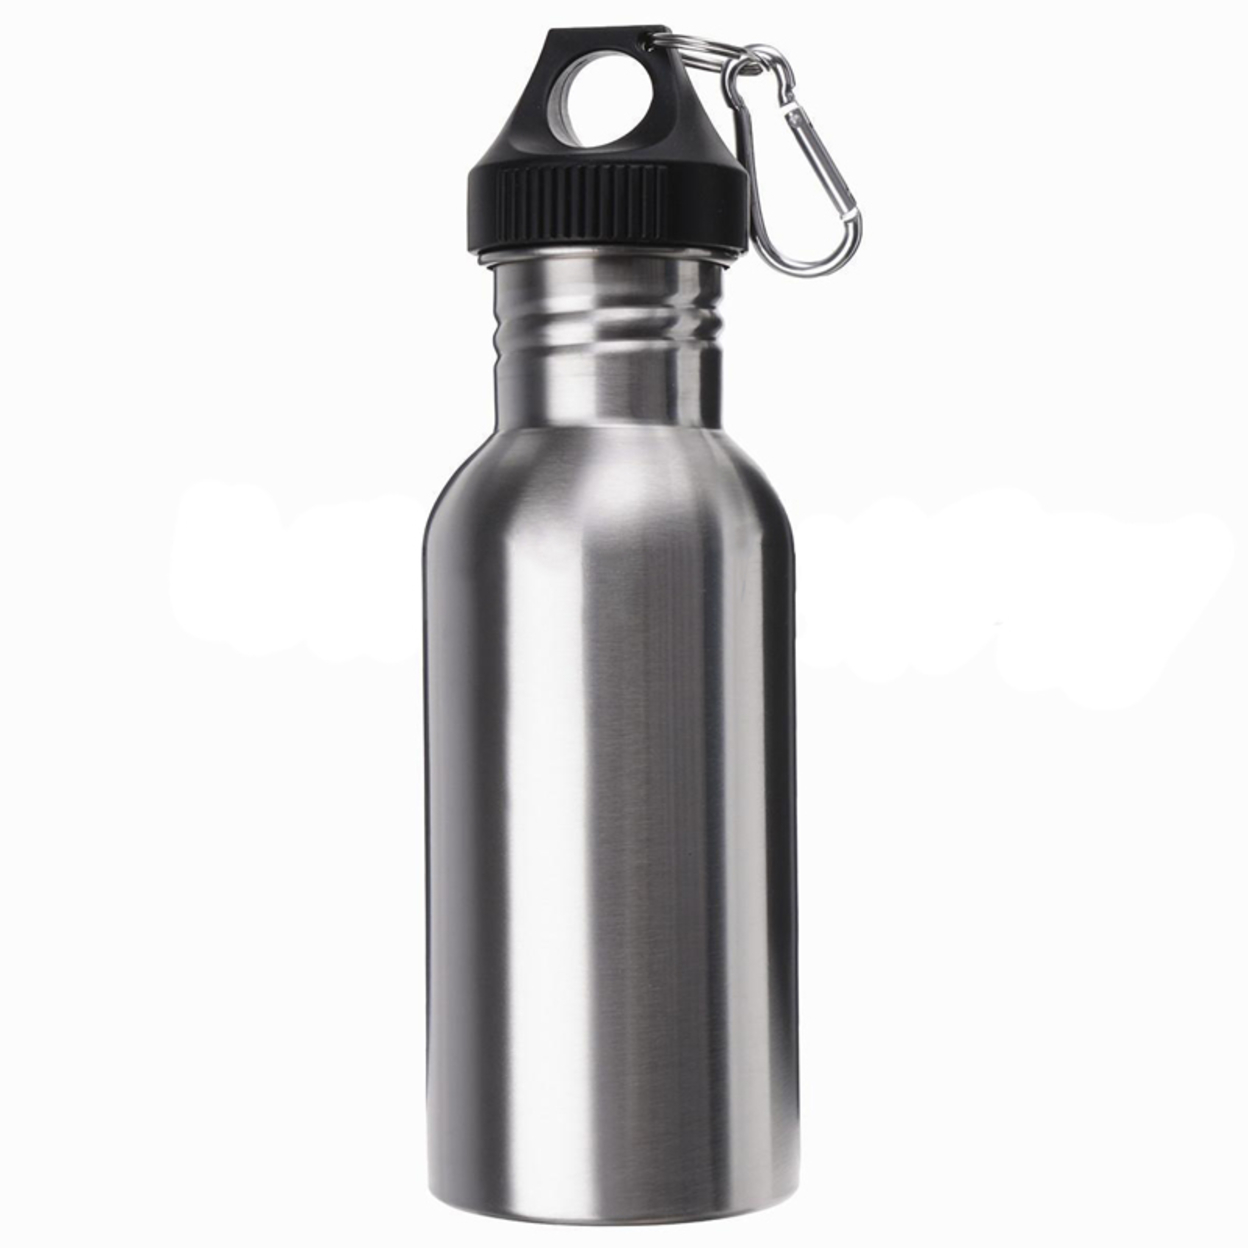 350/500/750Ml Stainless Steel Outdoor/Activity Drinking Water Bottle 59931af2469fe25656358a6c